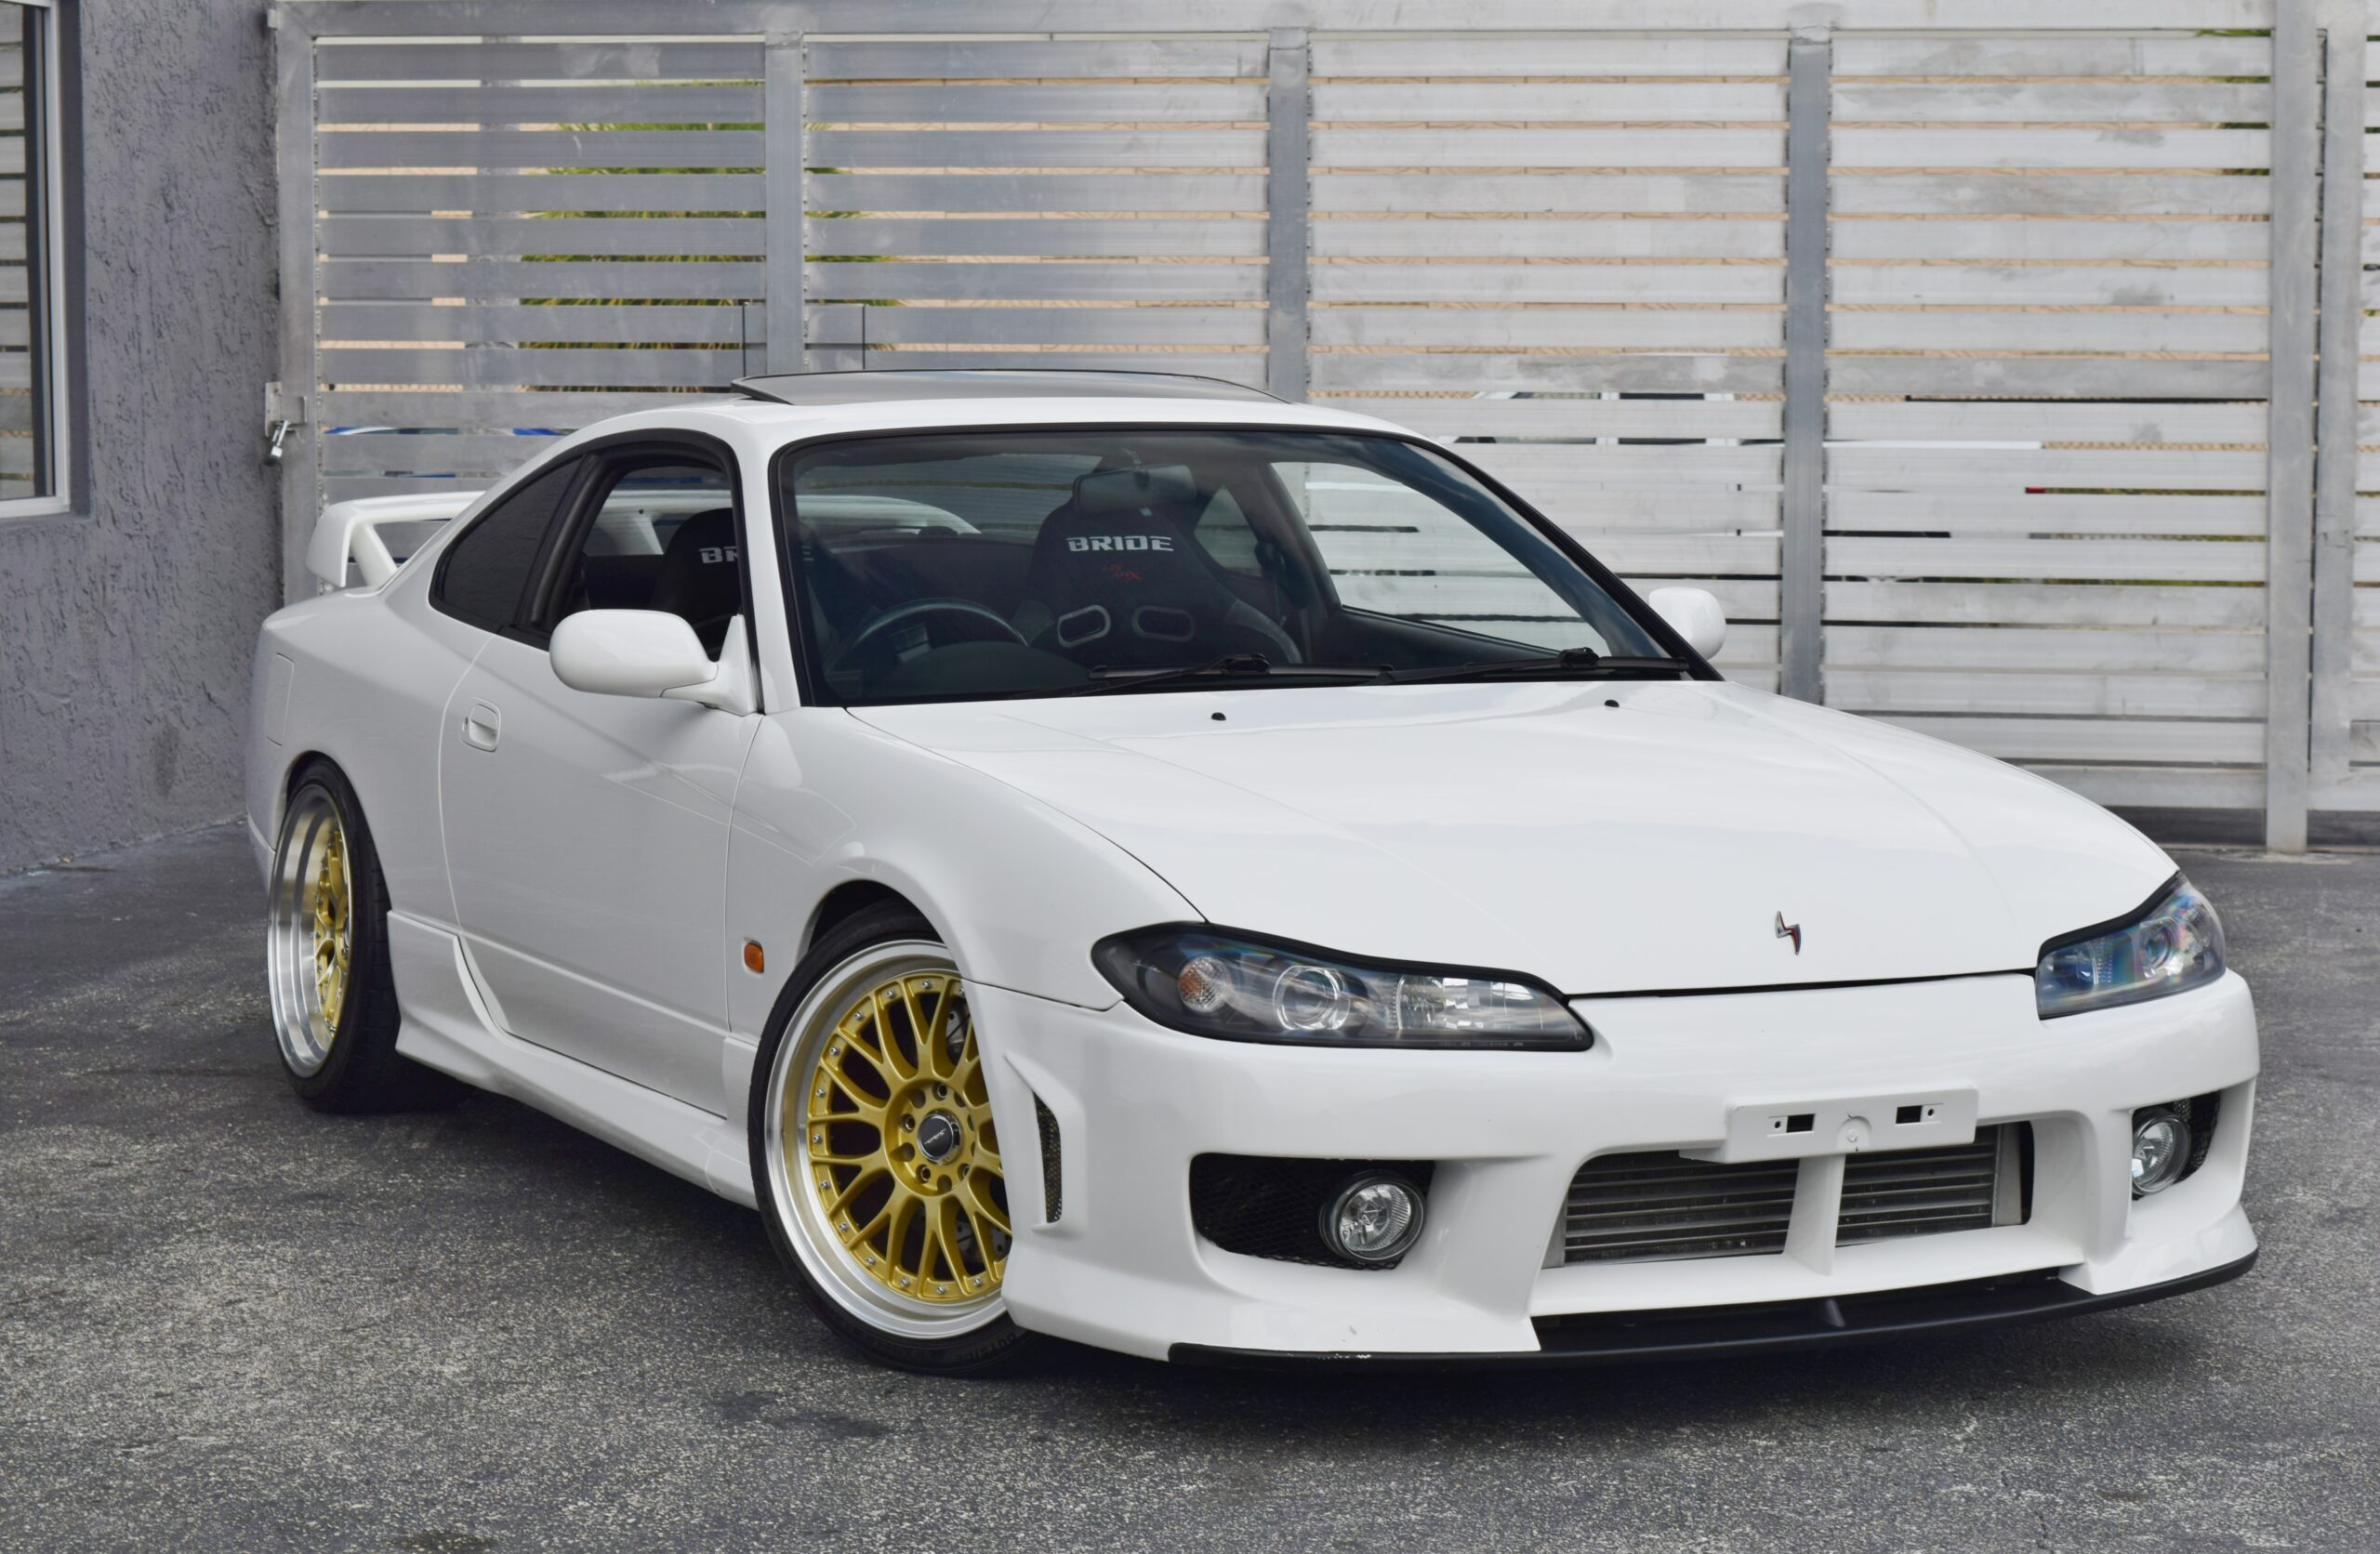 1999 Nissan 240SX Silvia S15 Spec R SR20 Turbo 375HP Well Sorted 6 speed manual with New Tein Coilovers/ New Clutch